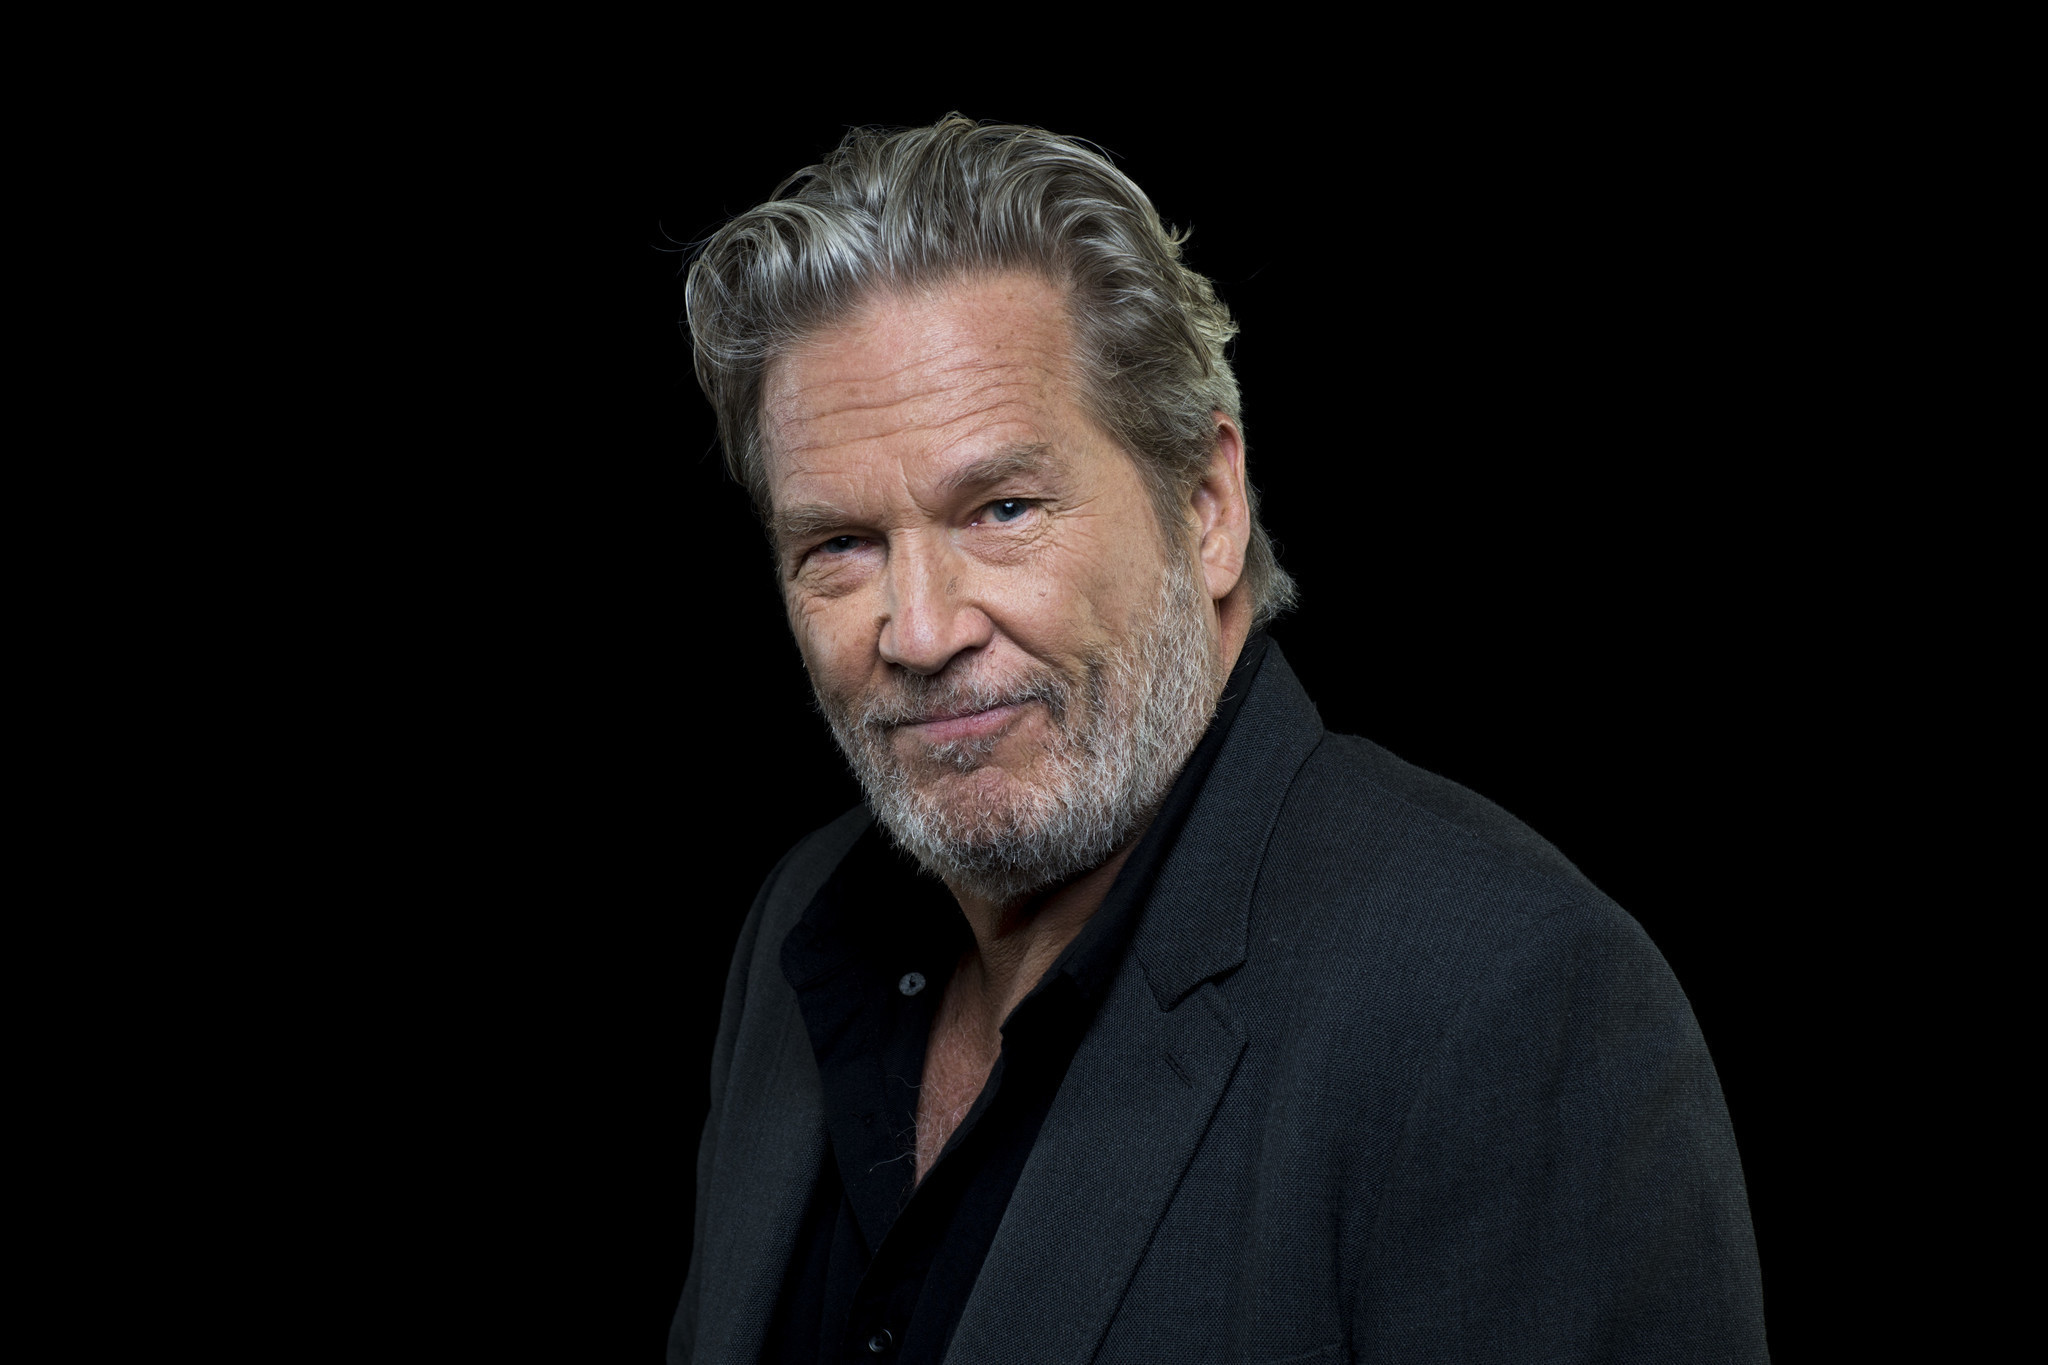 Jeff Bridges is an actor with wide range, eloquence and a ...